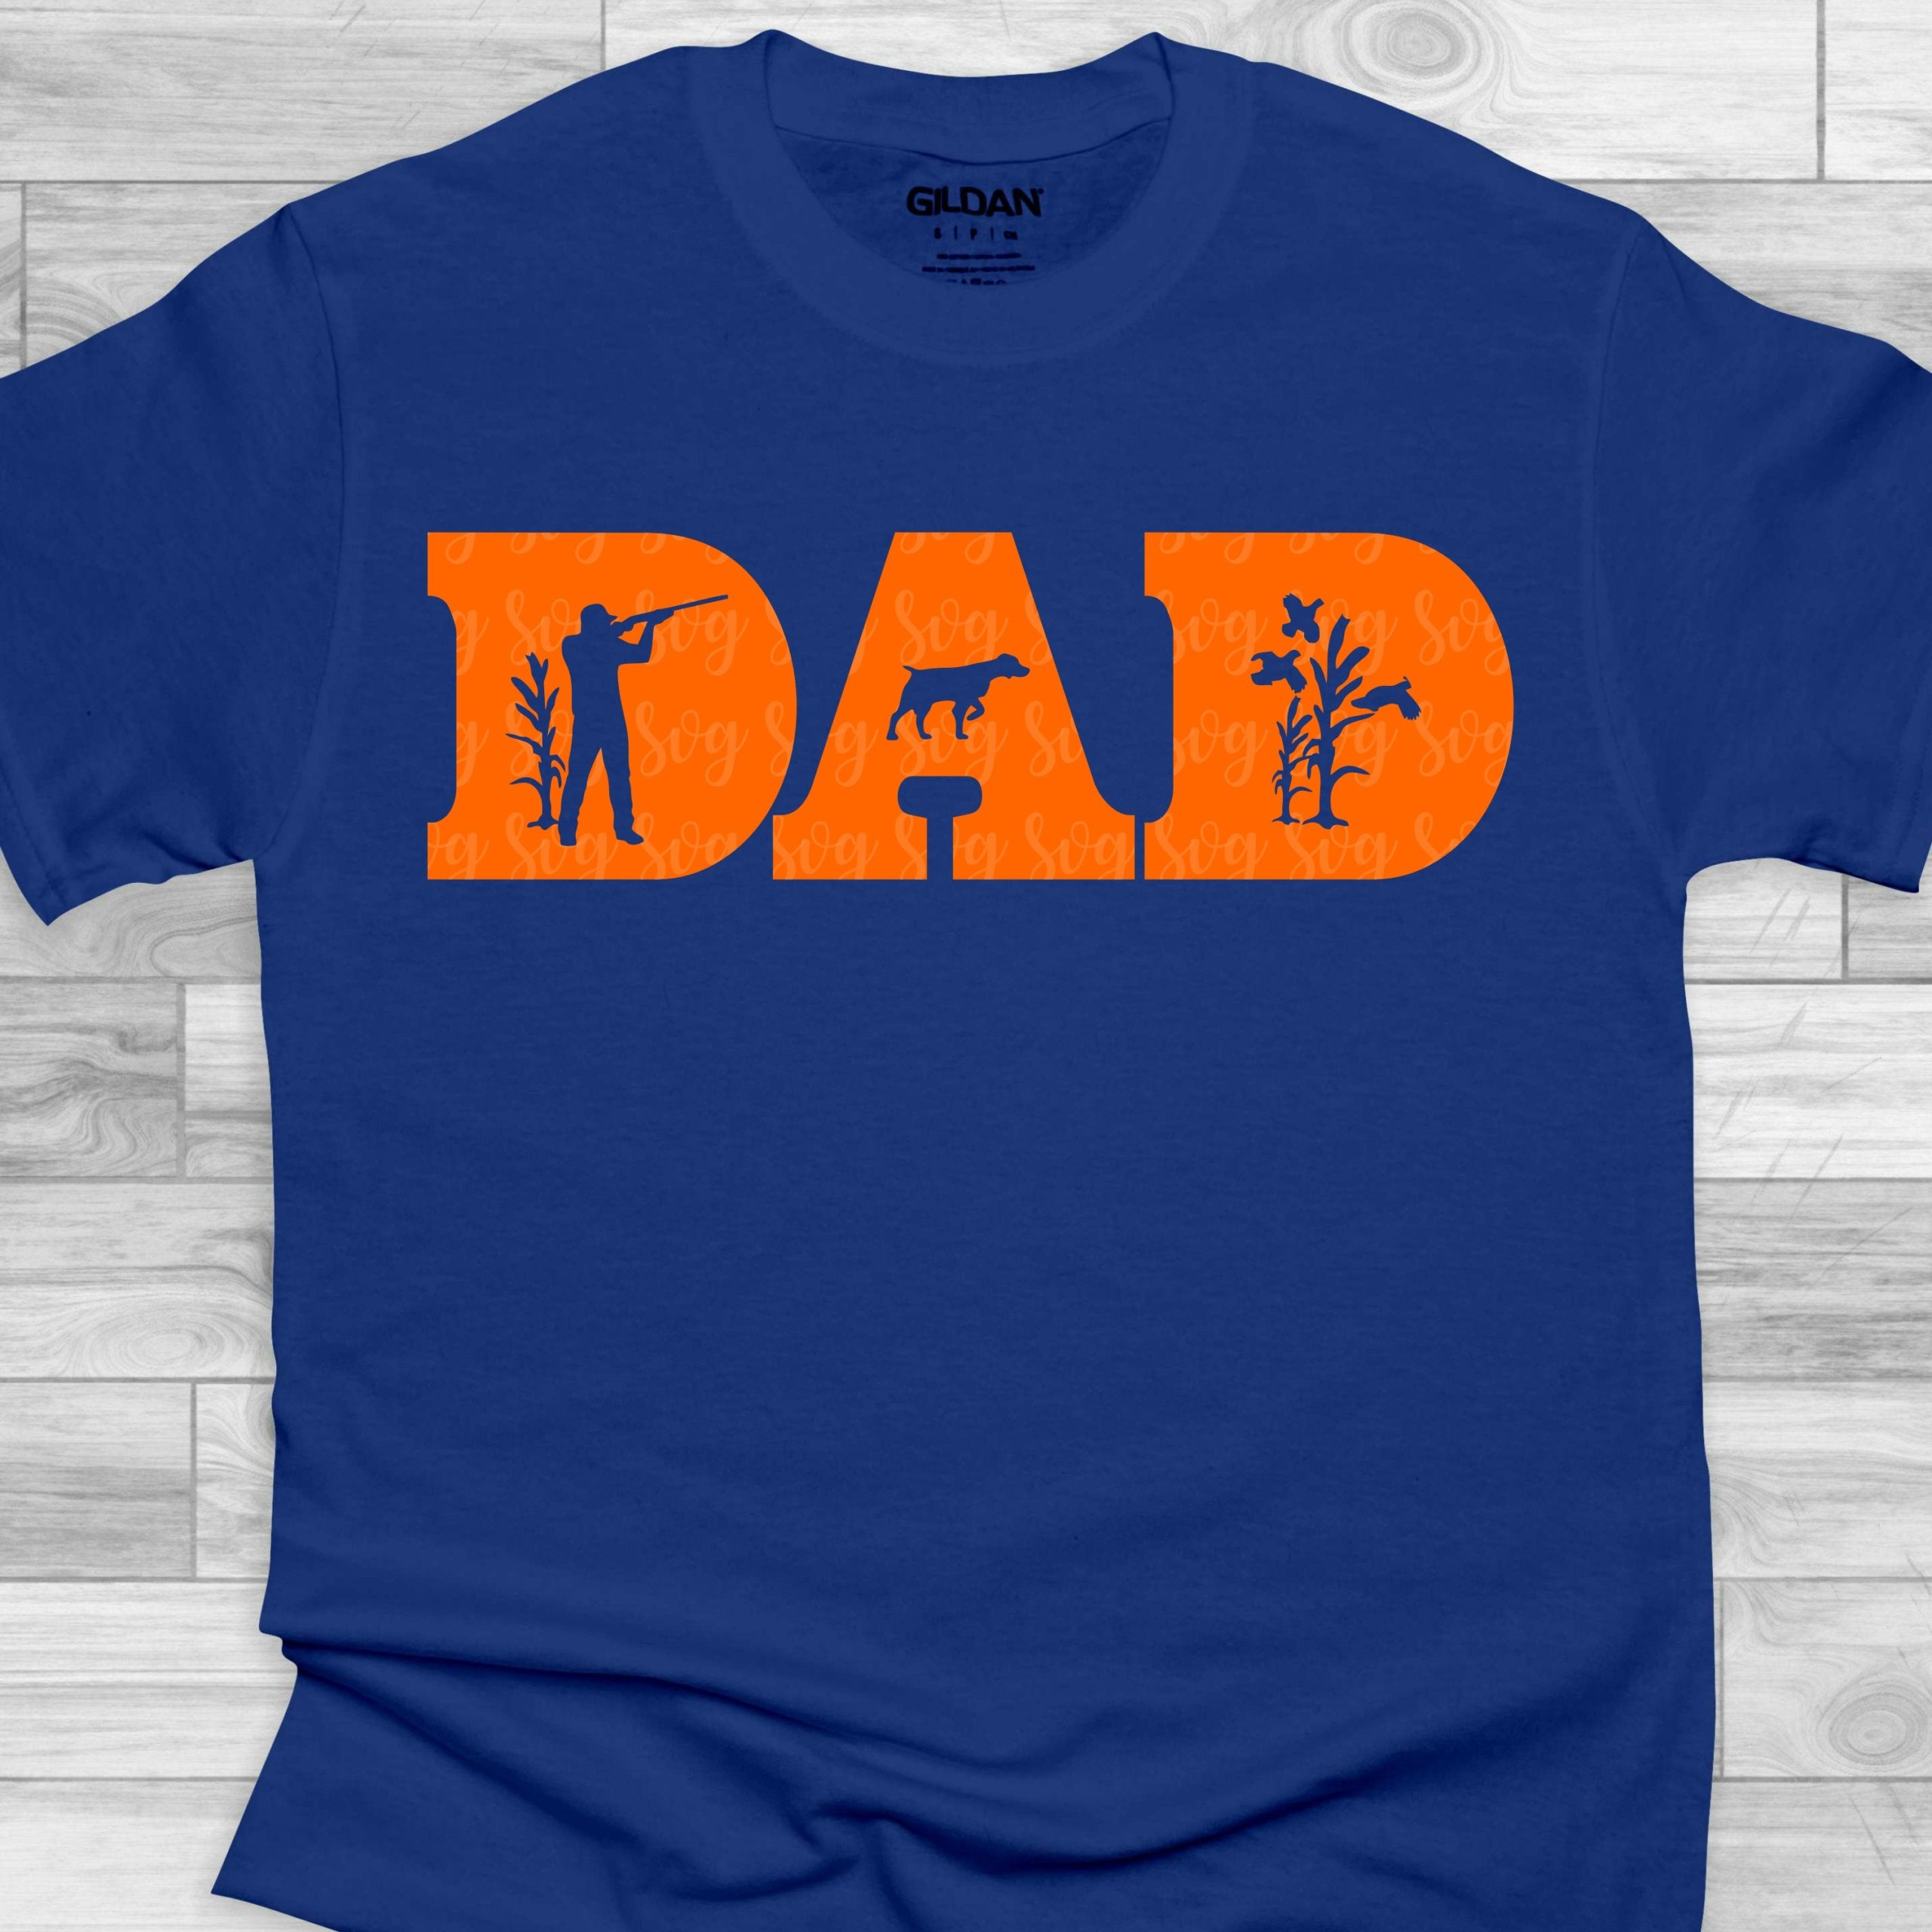 Dad-svgduck-hunting-svgfathers-day-svgdad-svgfathers-svgdaddy-svggrandpa-svgsilhouette-dxfcricut-cutting-filesvg-for-cricut-5ef7894f